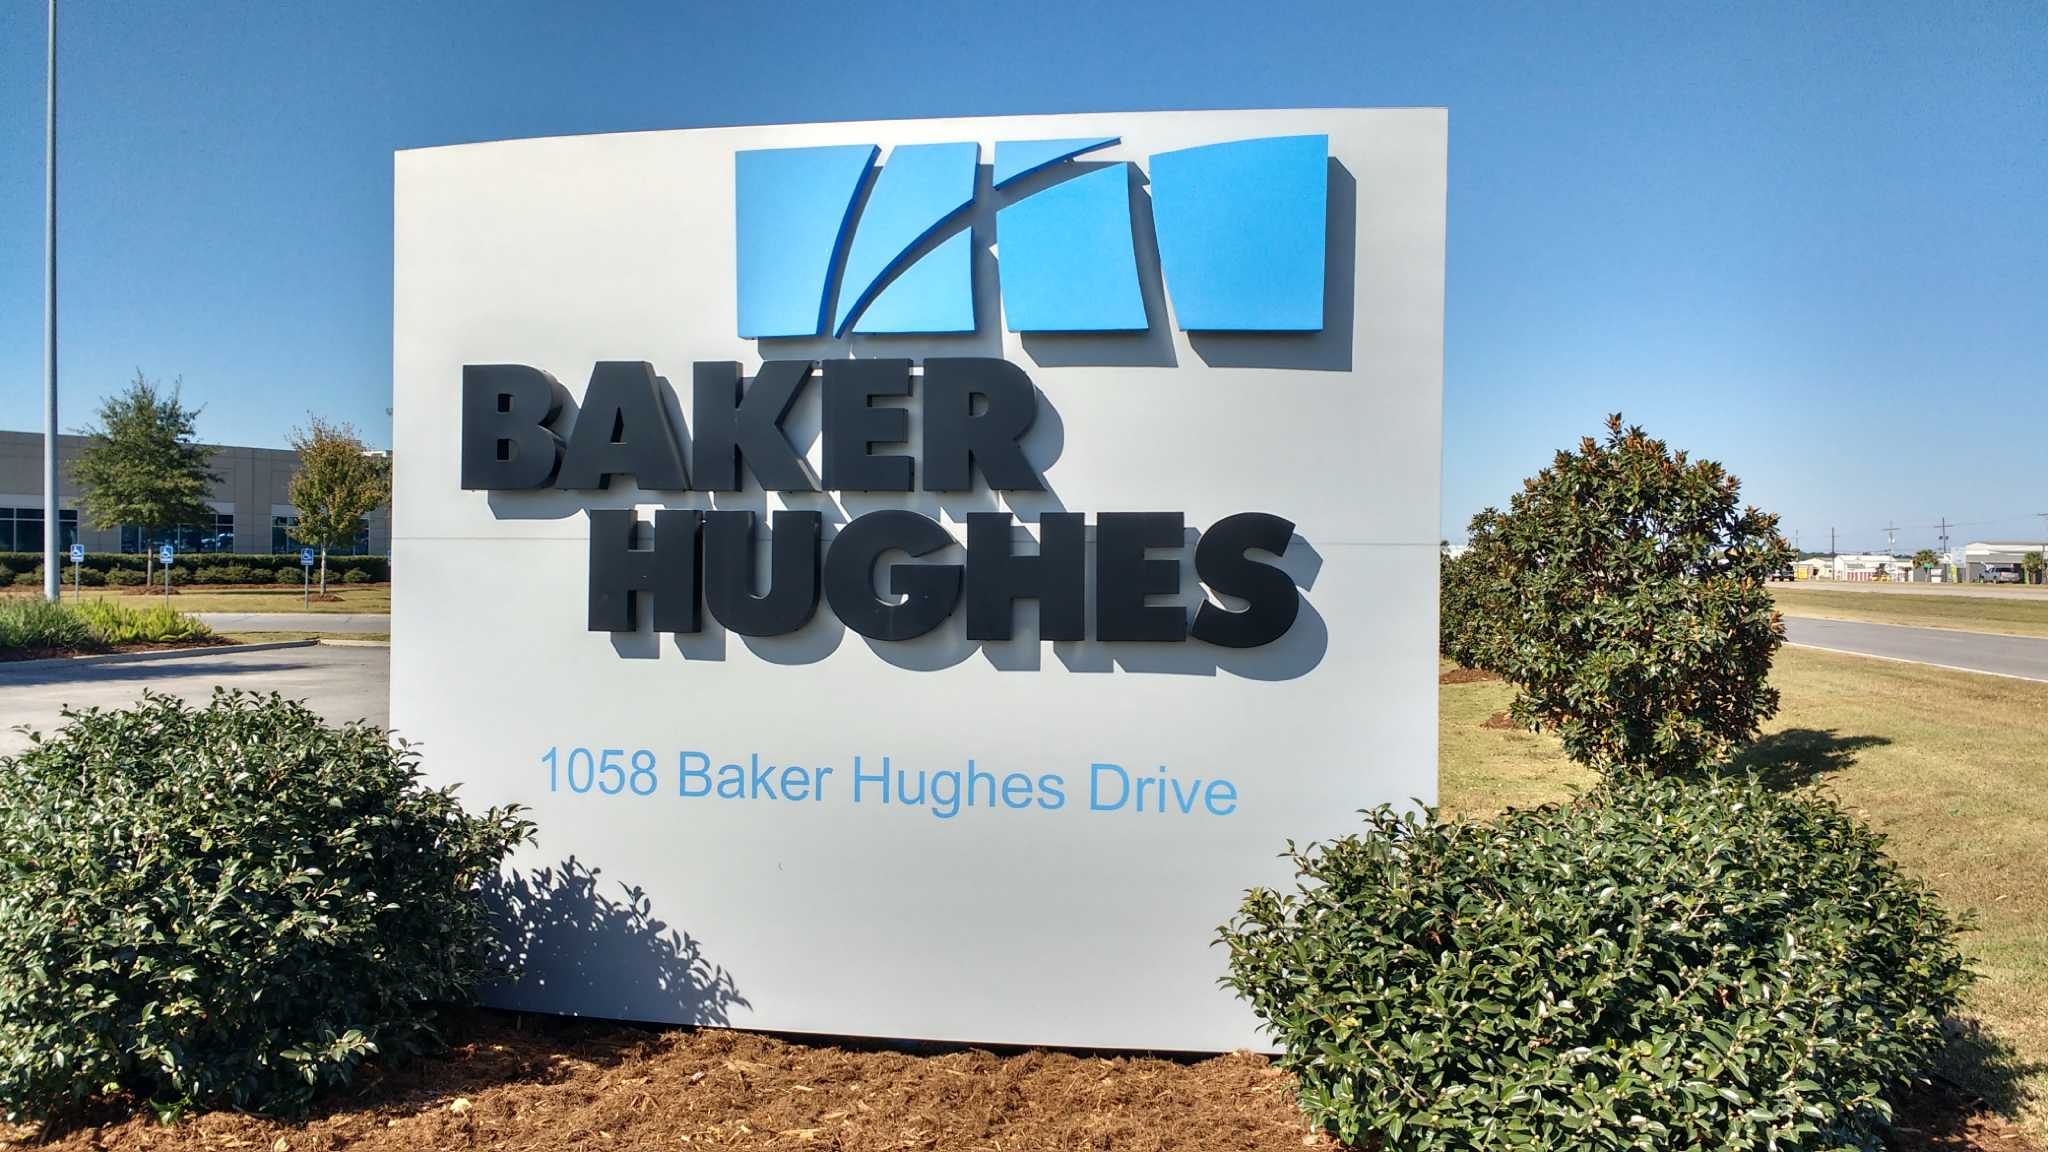 baker hughes Today's top 2617 baker hughes jobs in united states leverage your professional network, and get hired new baker hughes jobs added daily.